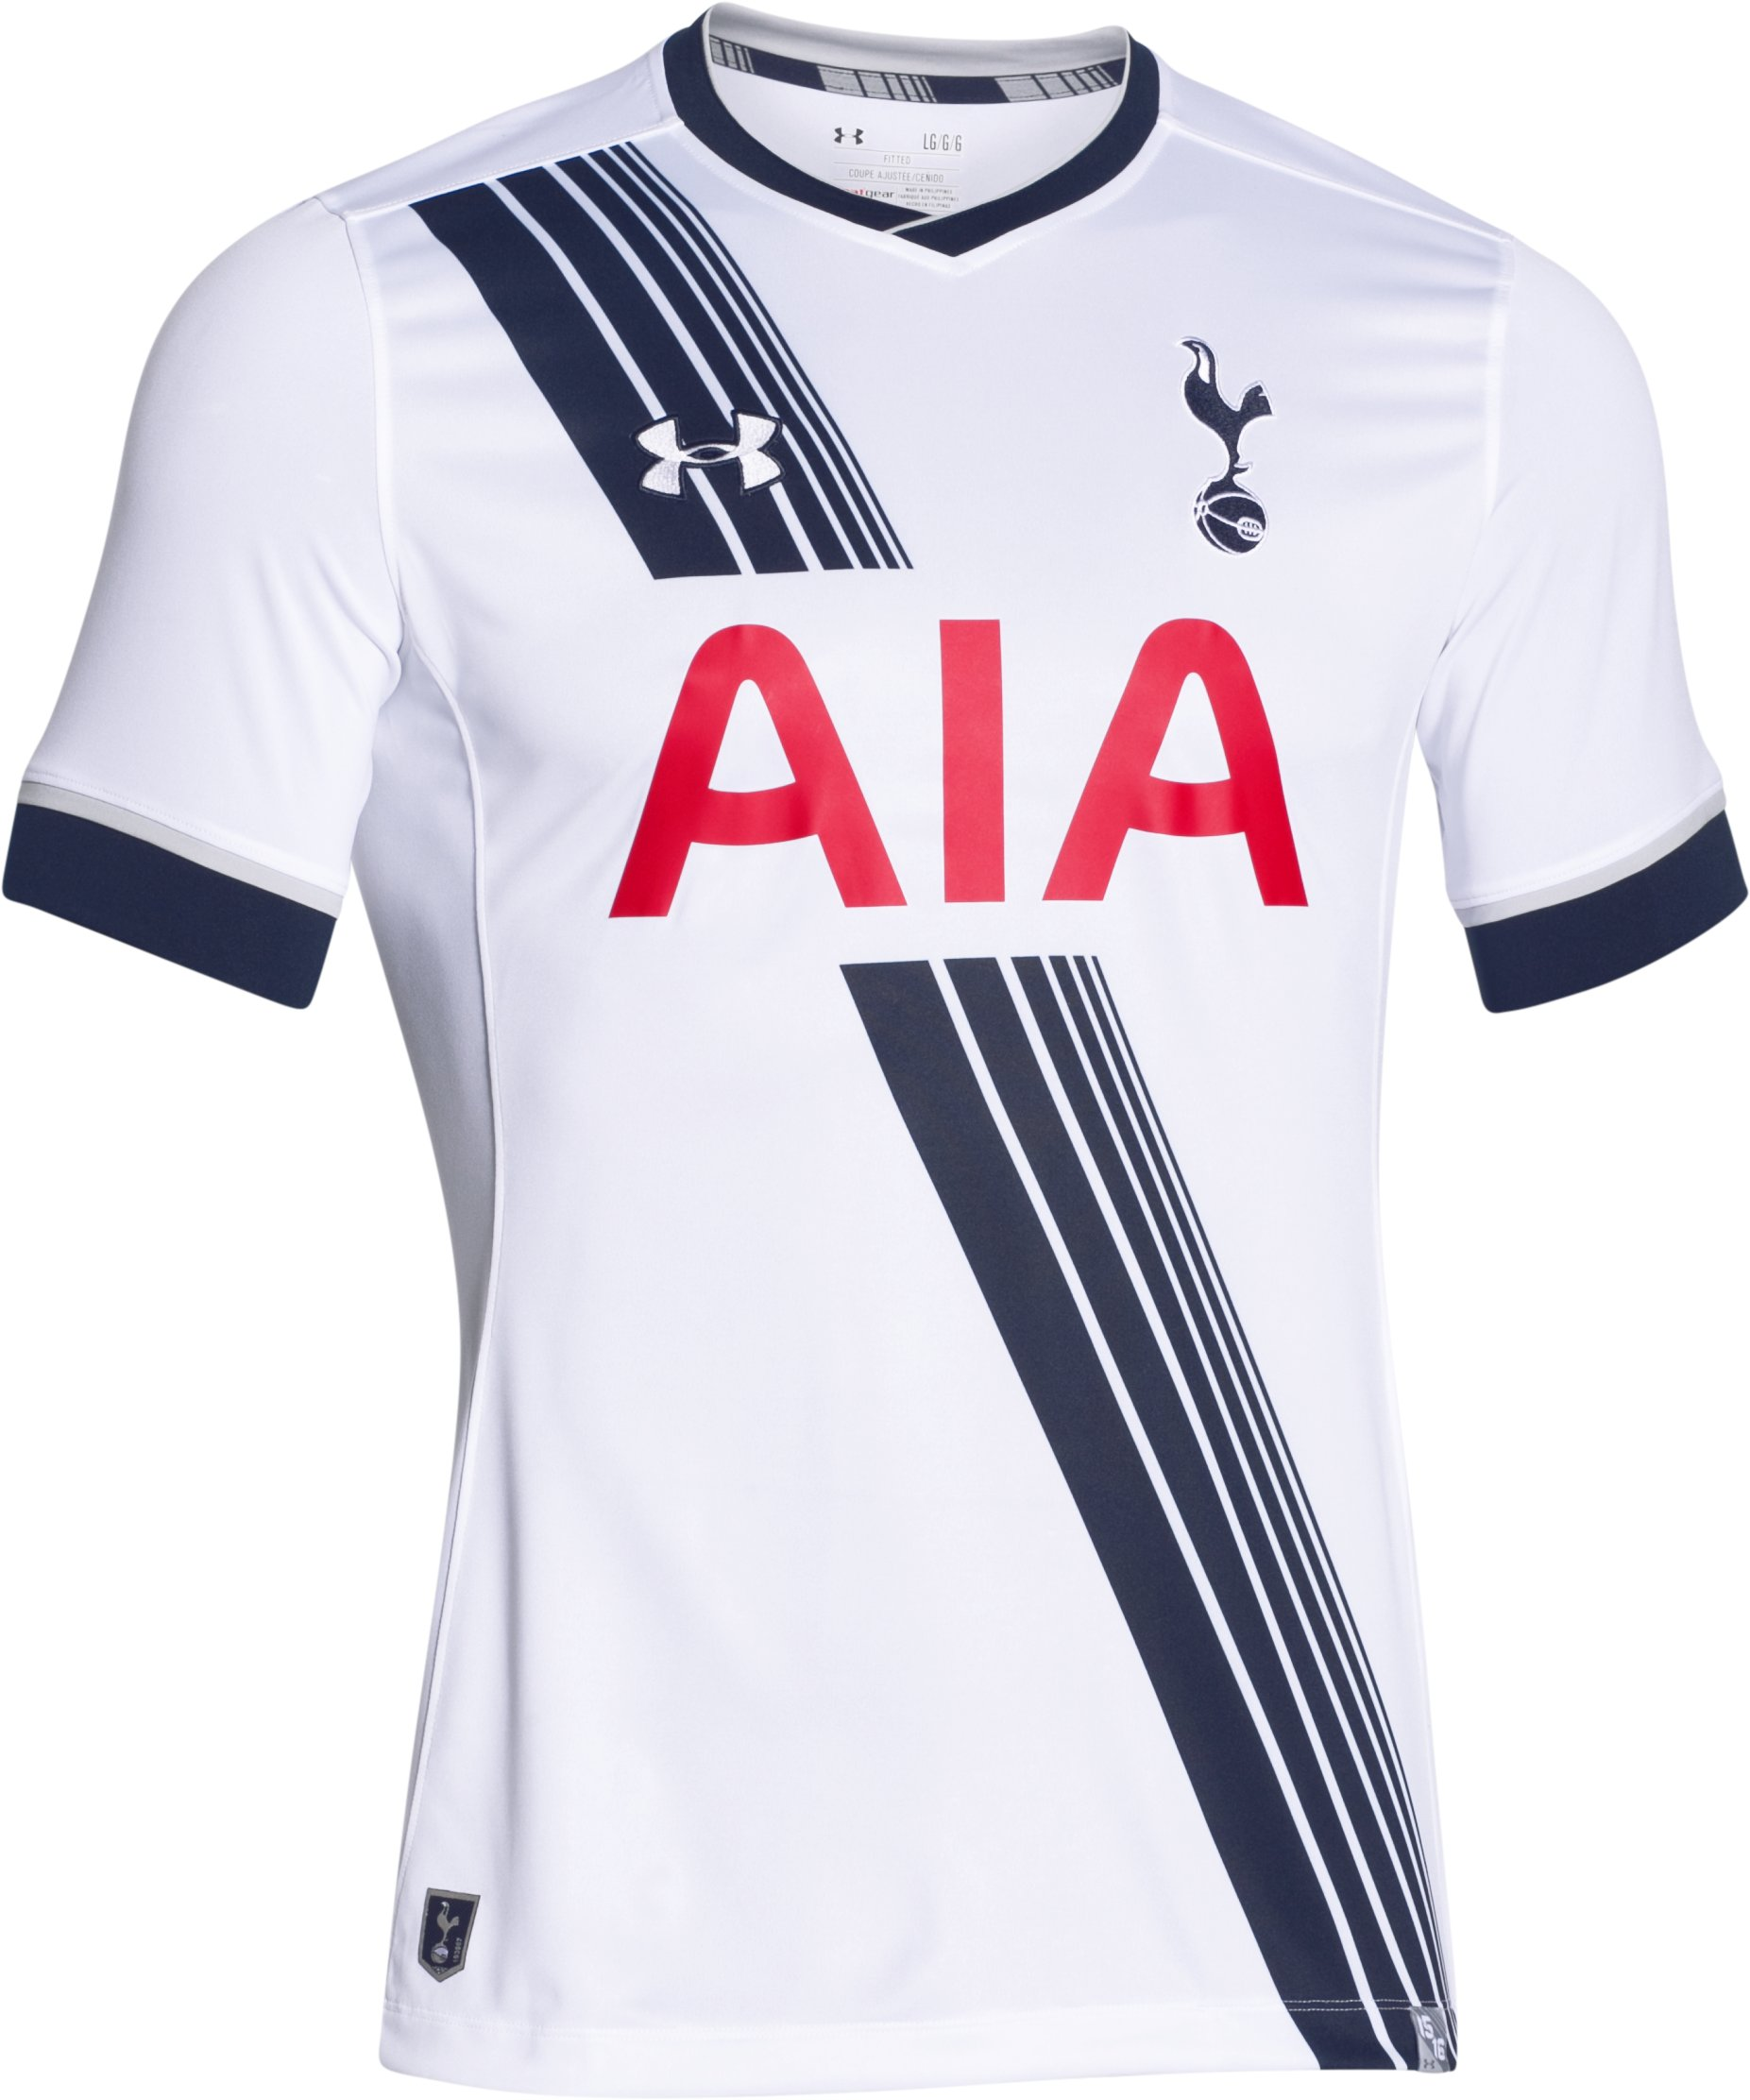 Men's Tottenham Hotspur 15/16 Home Replica Short Sleeve Shirt, White, undefined